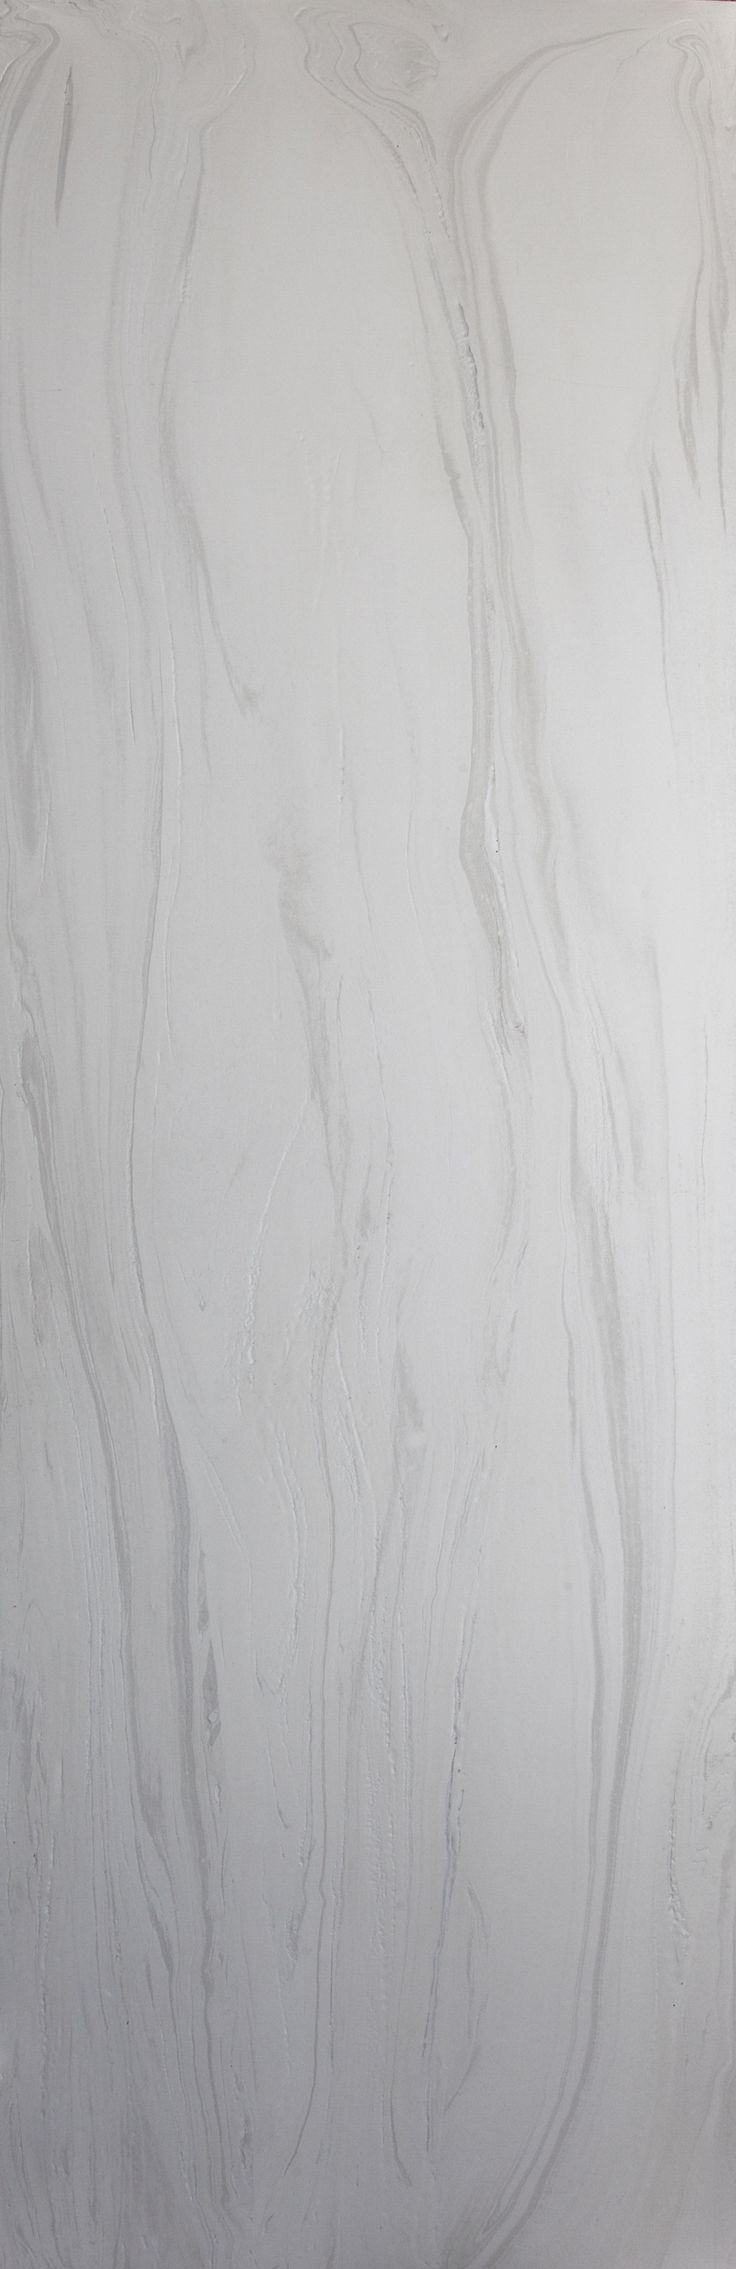 Stone marble granite exterior wall cladding view cladding wall - Handmade Decorative Wall Panel With A Subtle Marble Effect Looks Fabulous As A Feature Wall Or Cladding